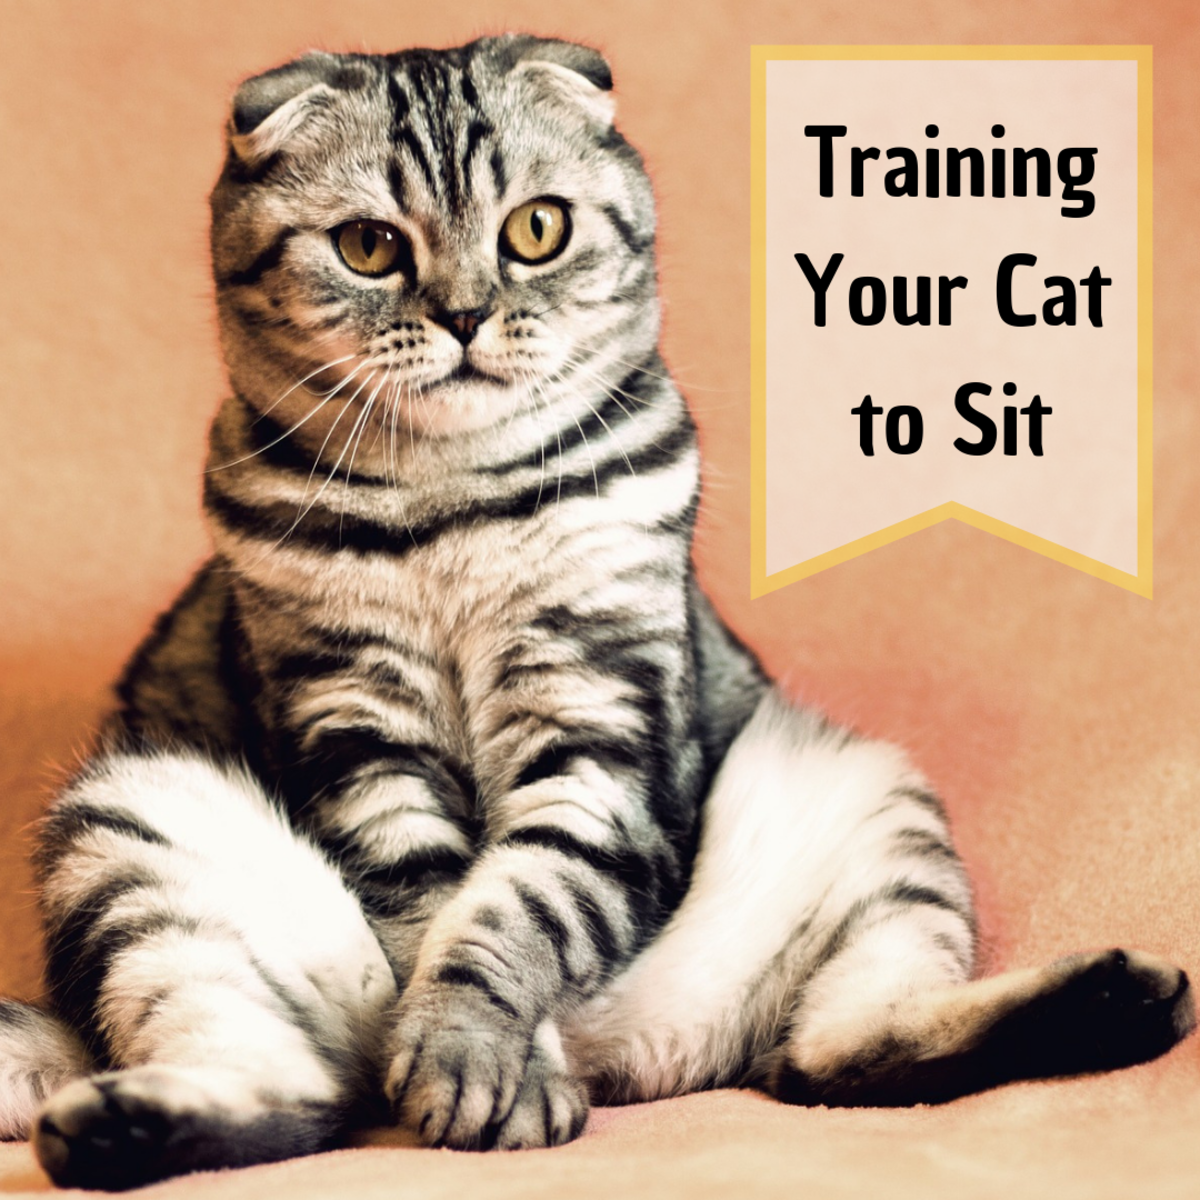 With the right tools and attitude, you can teach your cat to sit on command. This is great for mental stimulation, a cool party trick, and growth in the relationship between you and your fluffy friend.